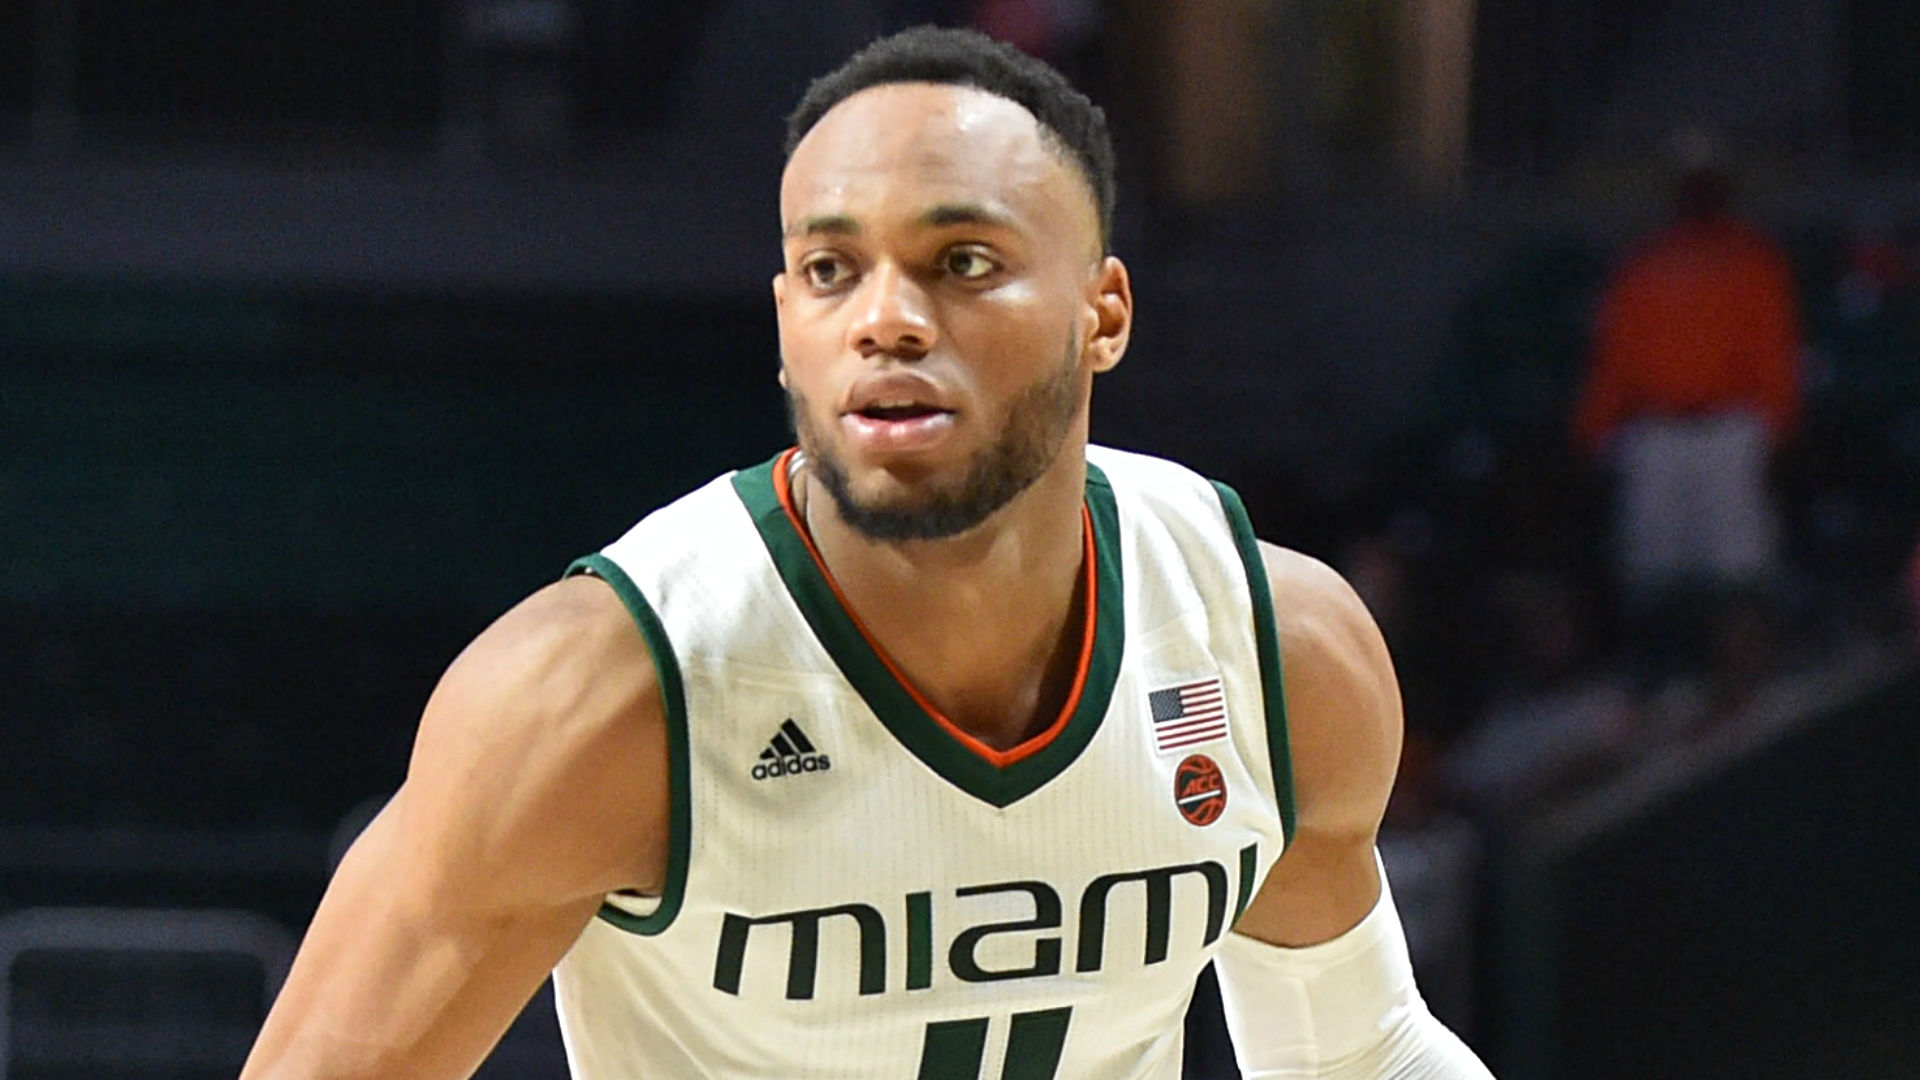 Miami Hurricanes Guard Bruce Brown To Undergo Foot Surgery